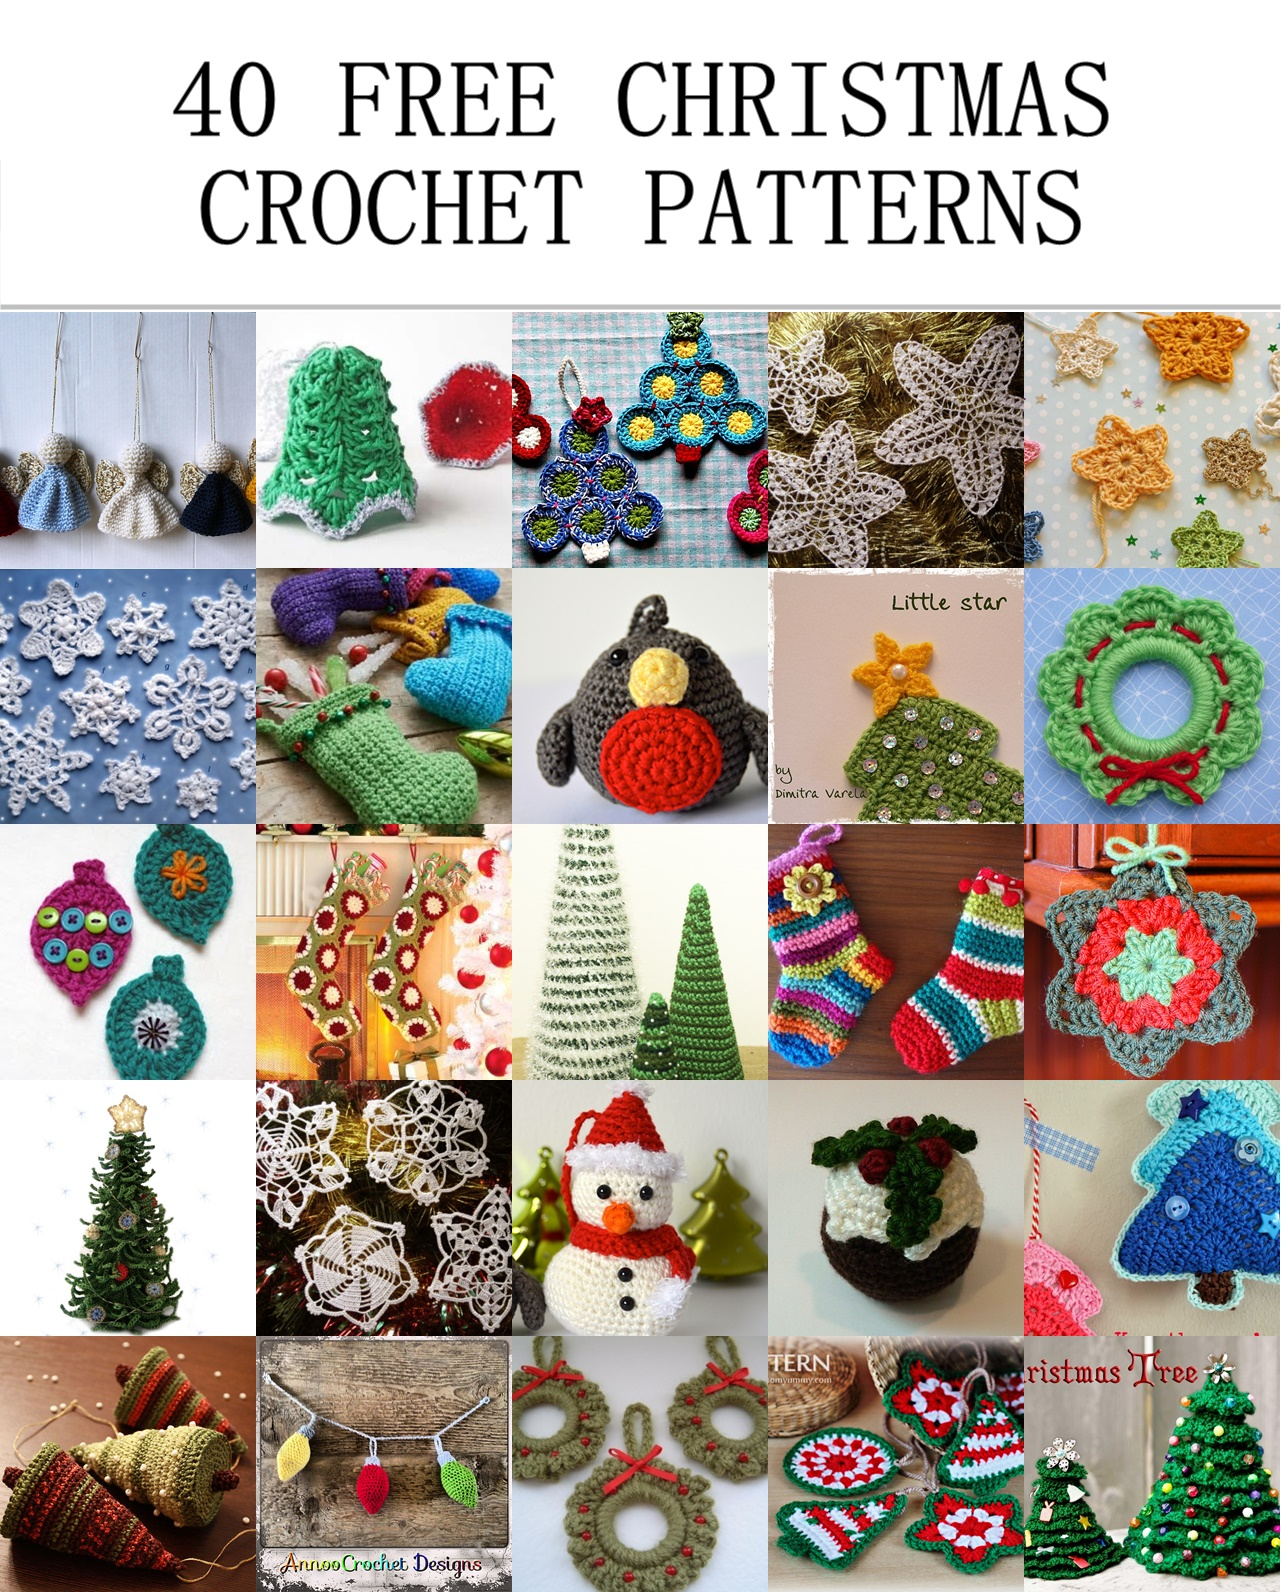 40 free christmas crochet patterns crochet arcade just click on the photo to go to the original websiteblog that includes the free crochet pattern have fun bankloansurffo Image collections